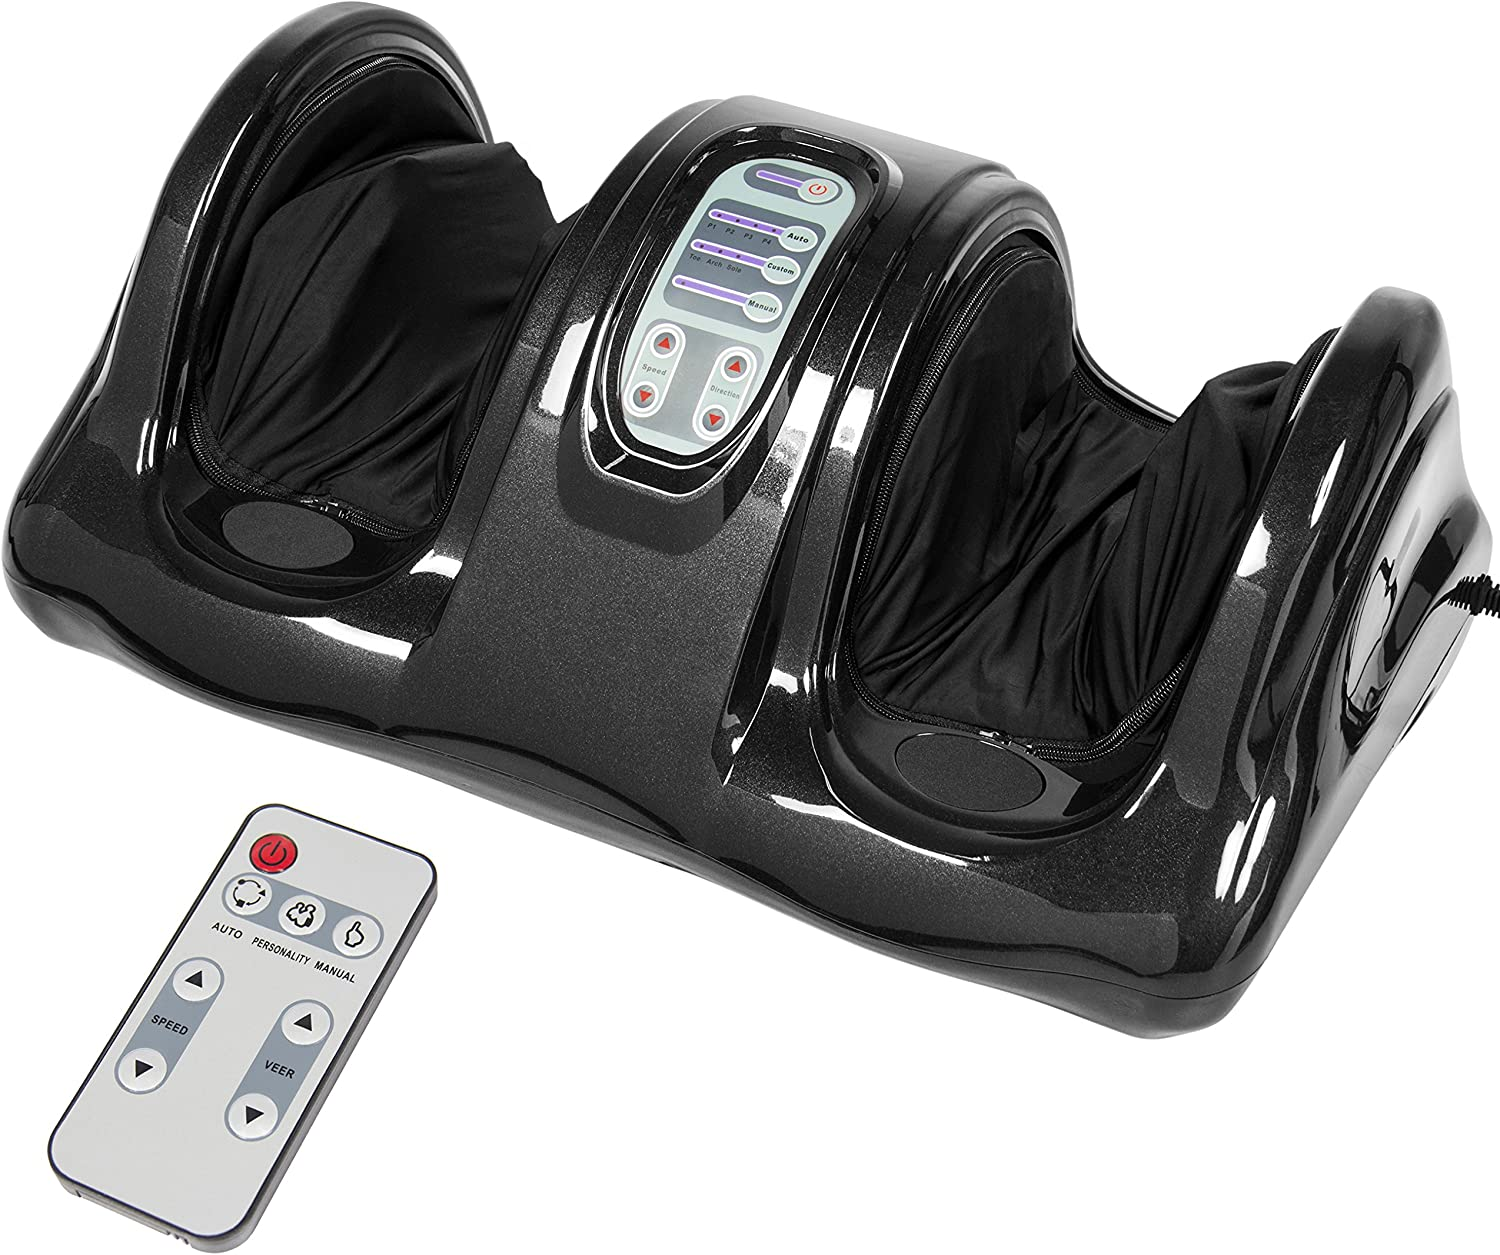 Best Choice Products Therapeutic Kneading and Rolling Shiatsu Foot Massager for Foot, Ankle, Nerve Pain w/ High Intensity Rollers, Remote Control, 4 Programs, 3 Massage Modes - Black